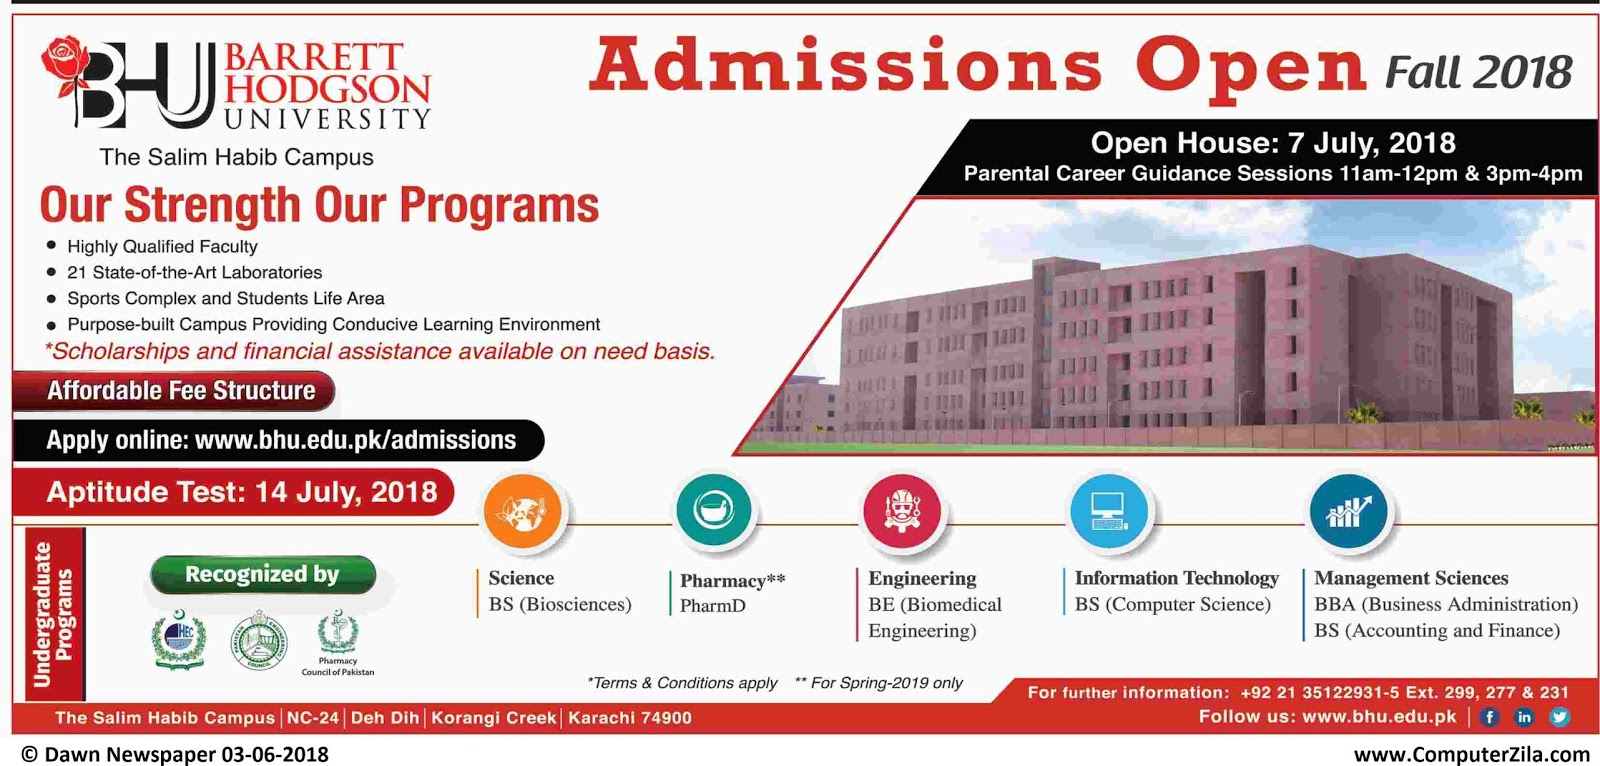 Barrett Hodgson University Admissions Fall 2018